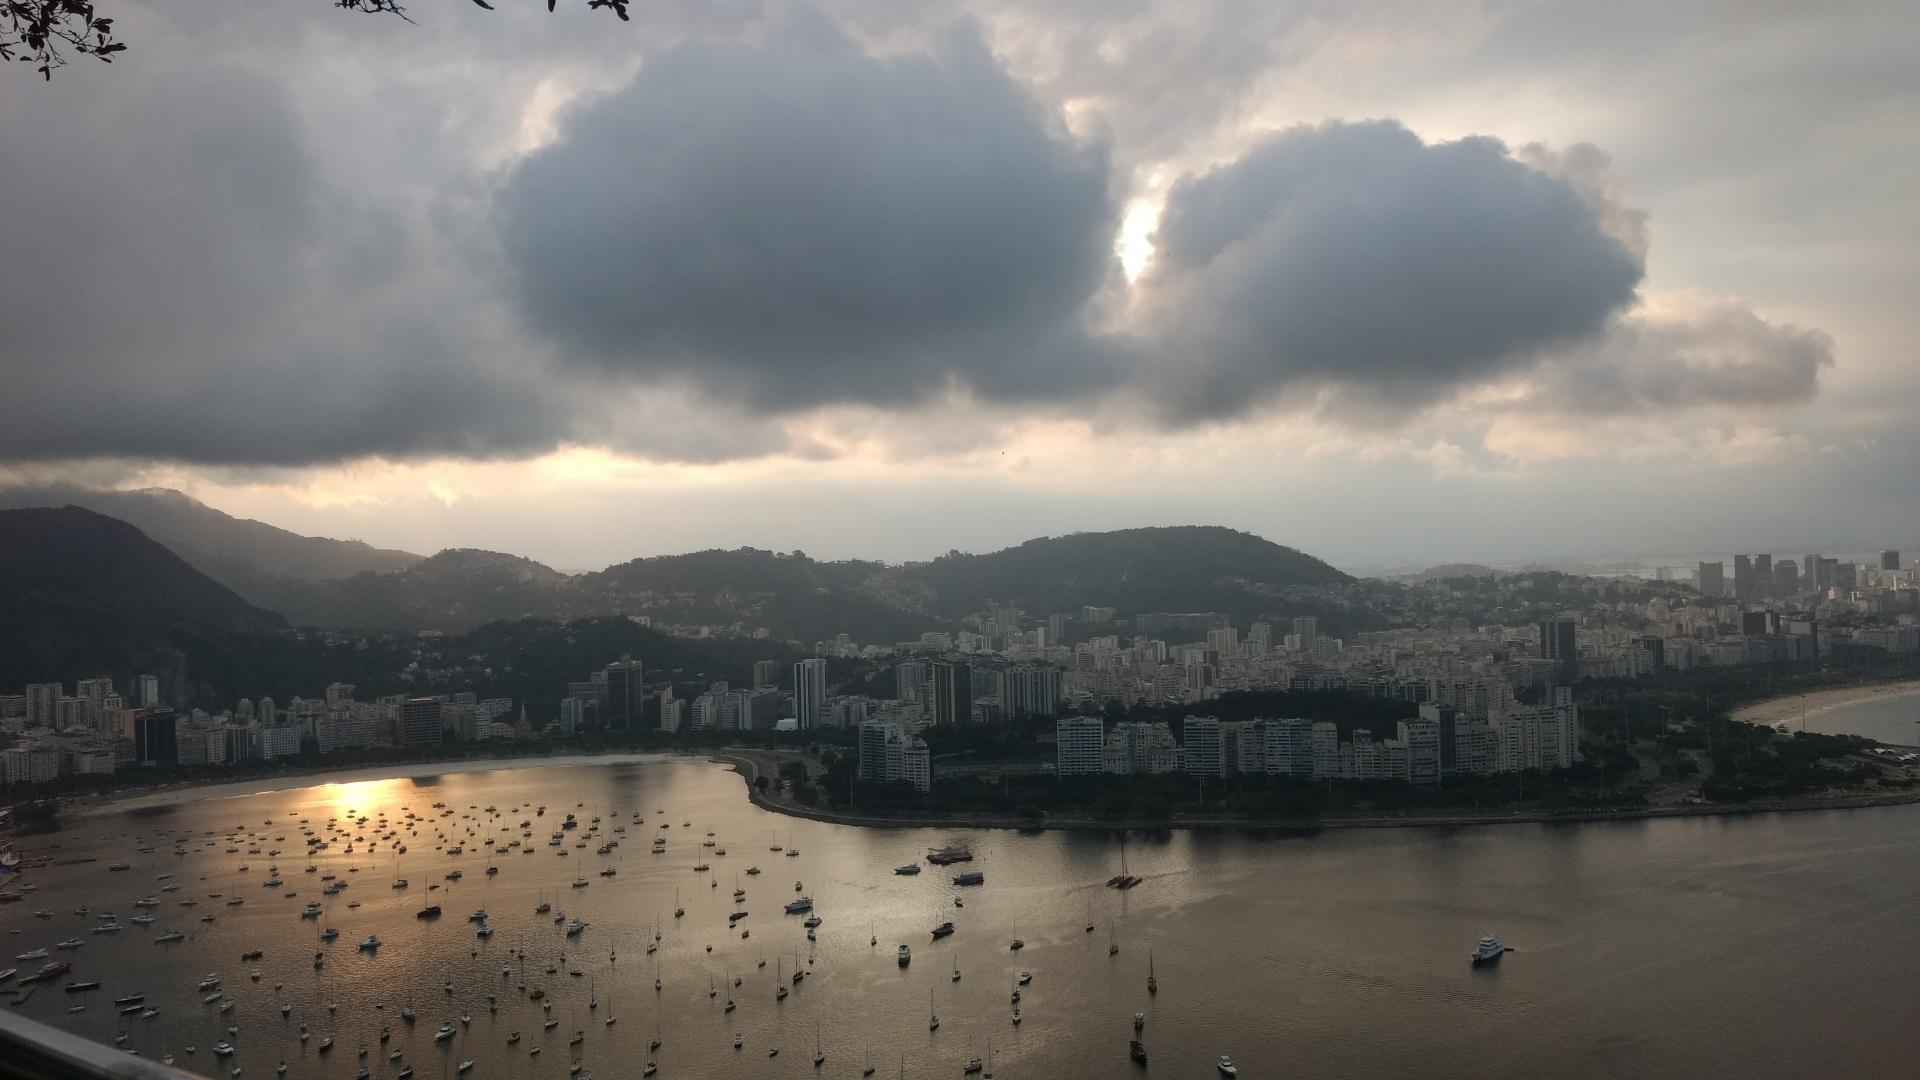 Looking out over the Sailing at the Rio 2016 Olympics